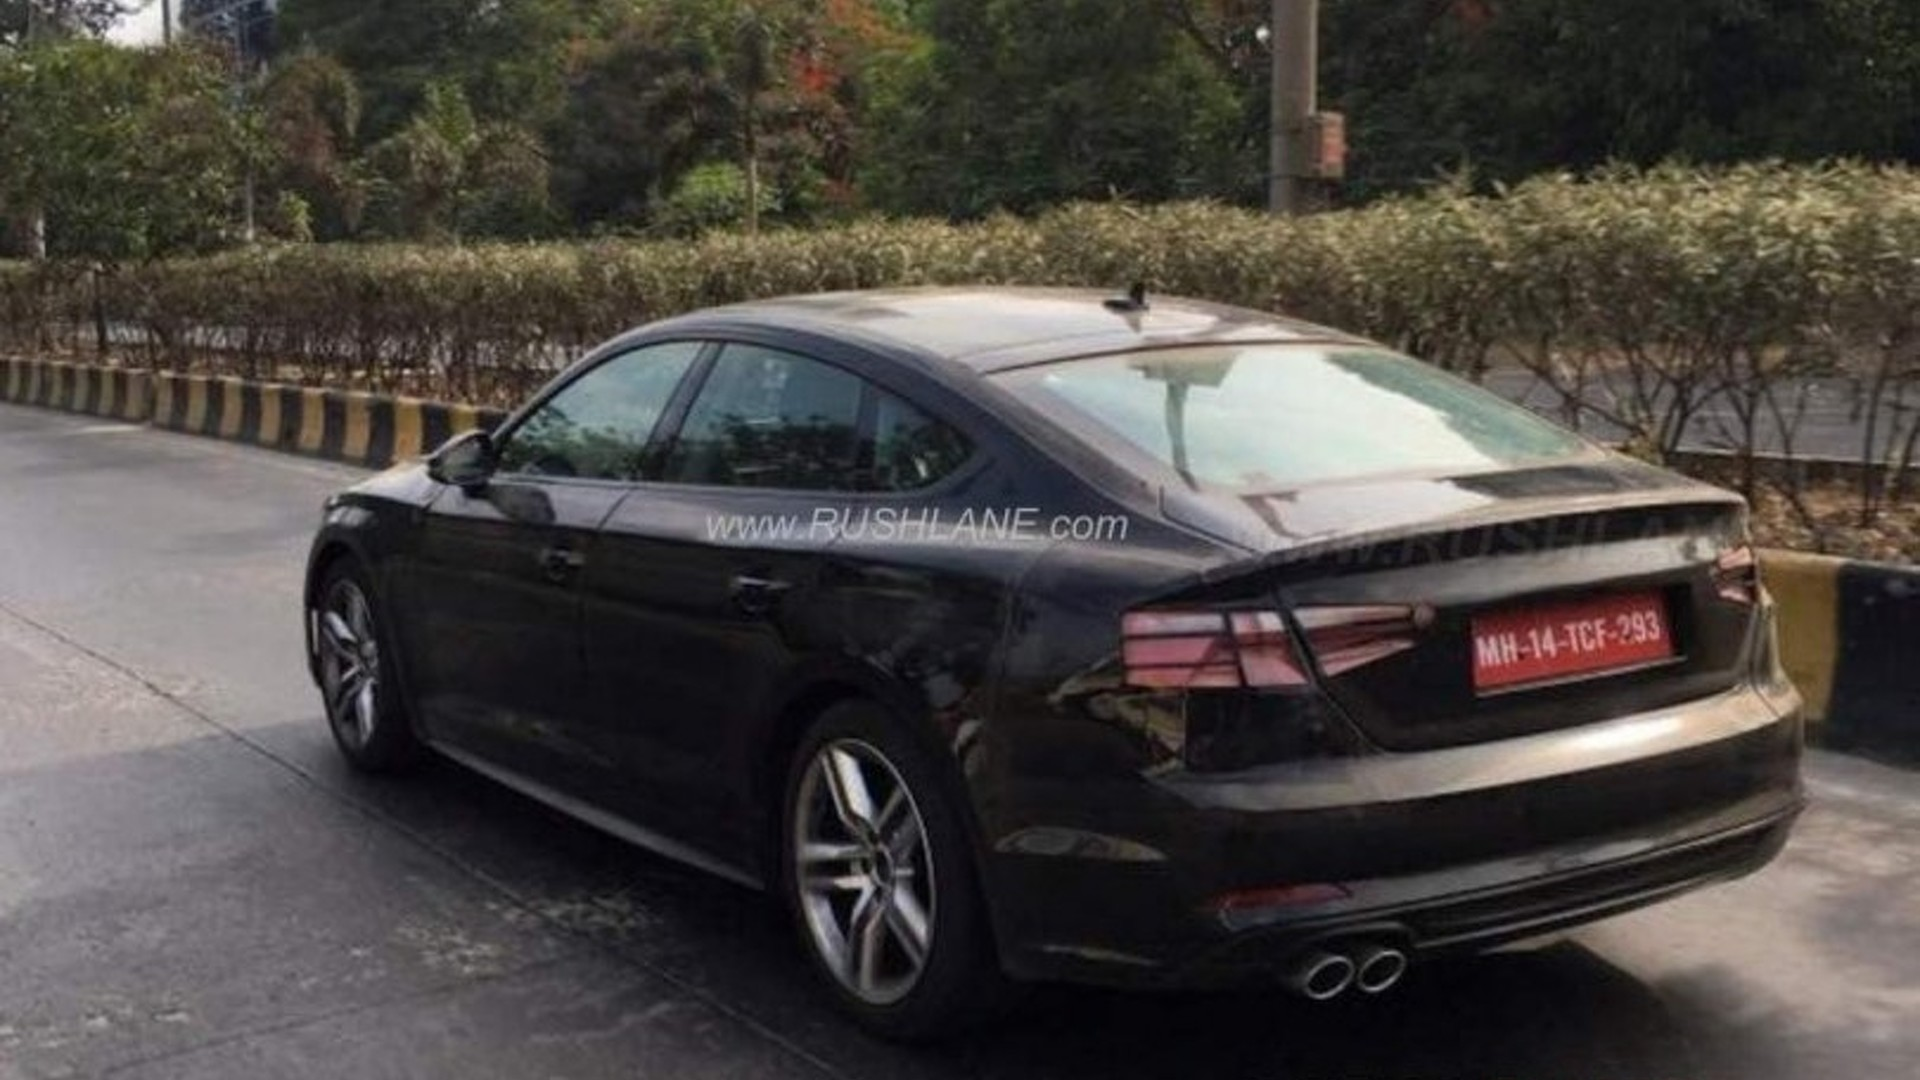 Audi A5 Sportback 2017 Auto Bild Idee A 3 Fuse Box Spied In India With Clever Disguise